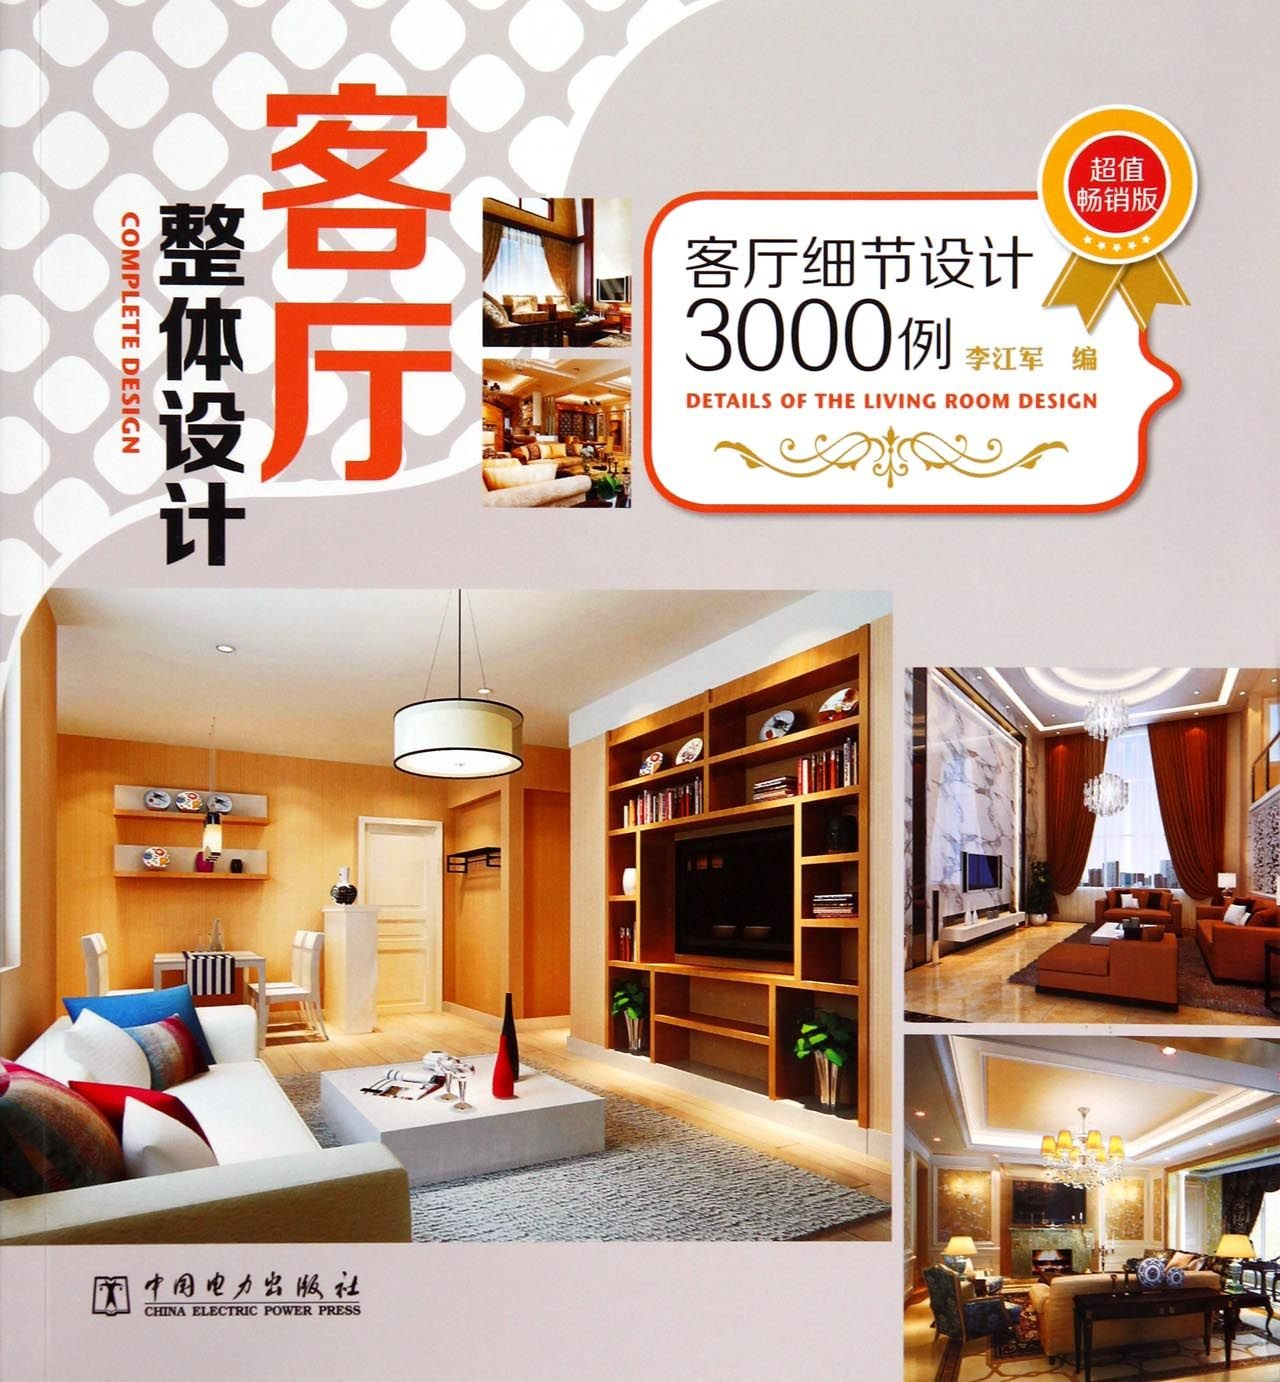 Download Living room detail design 3000 cases: Living the overall design(Chinese Edition) ebook